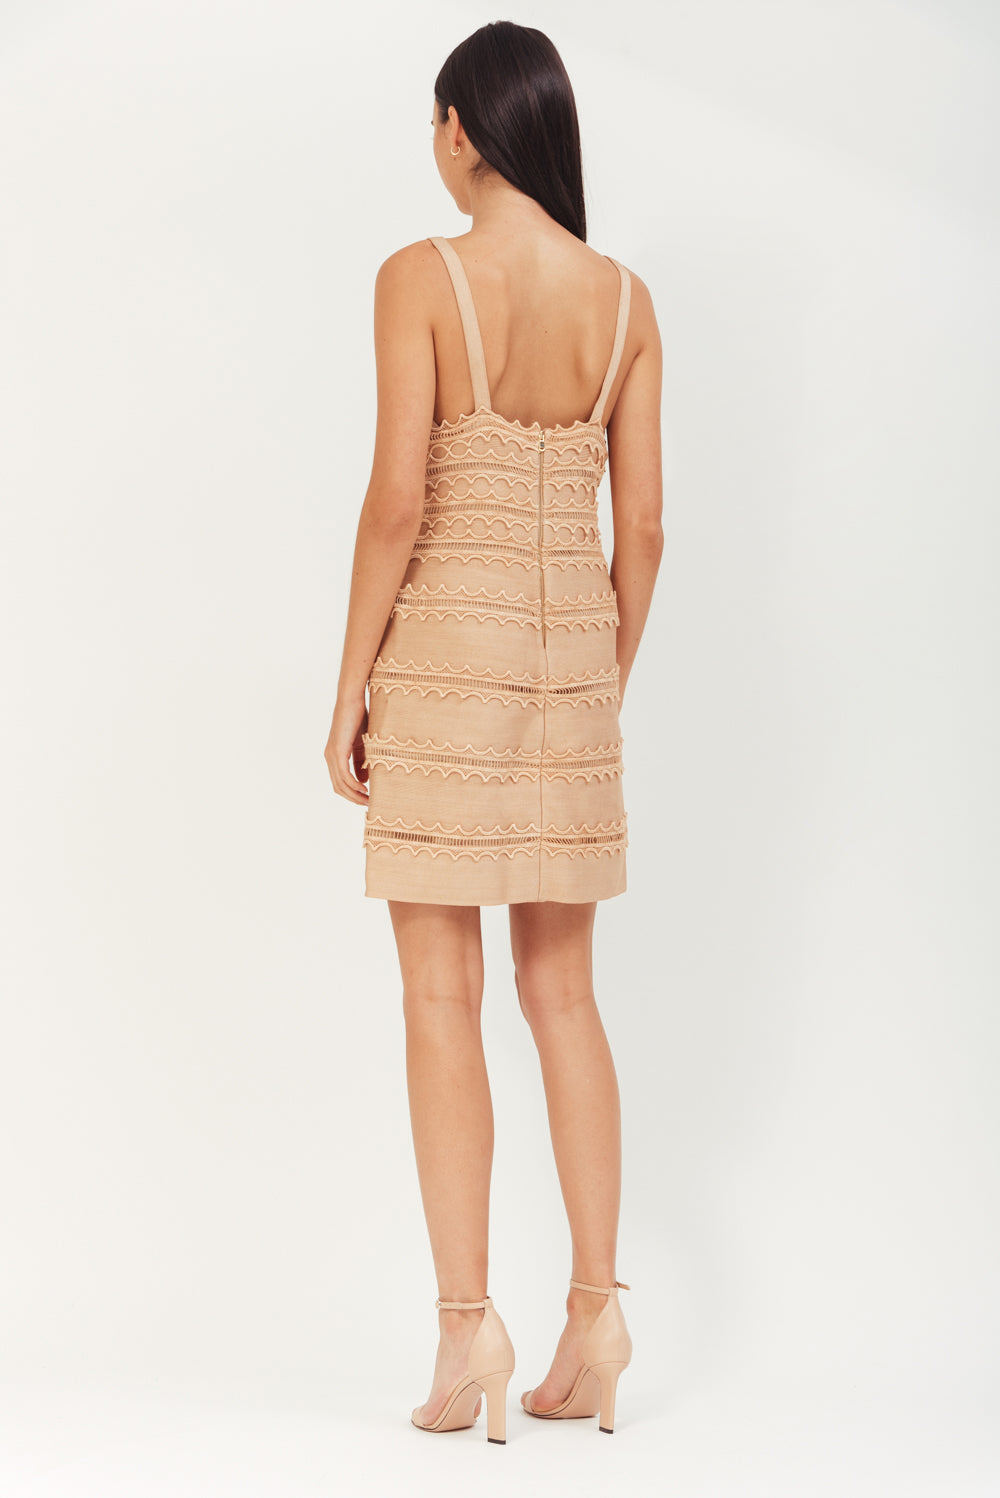 BEIGE MINI ELASTIC BANDED DRESS WITH LACE TRIMMING